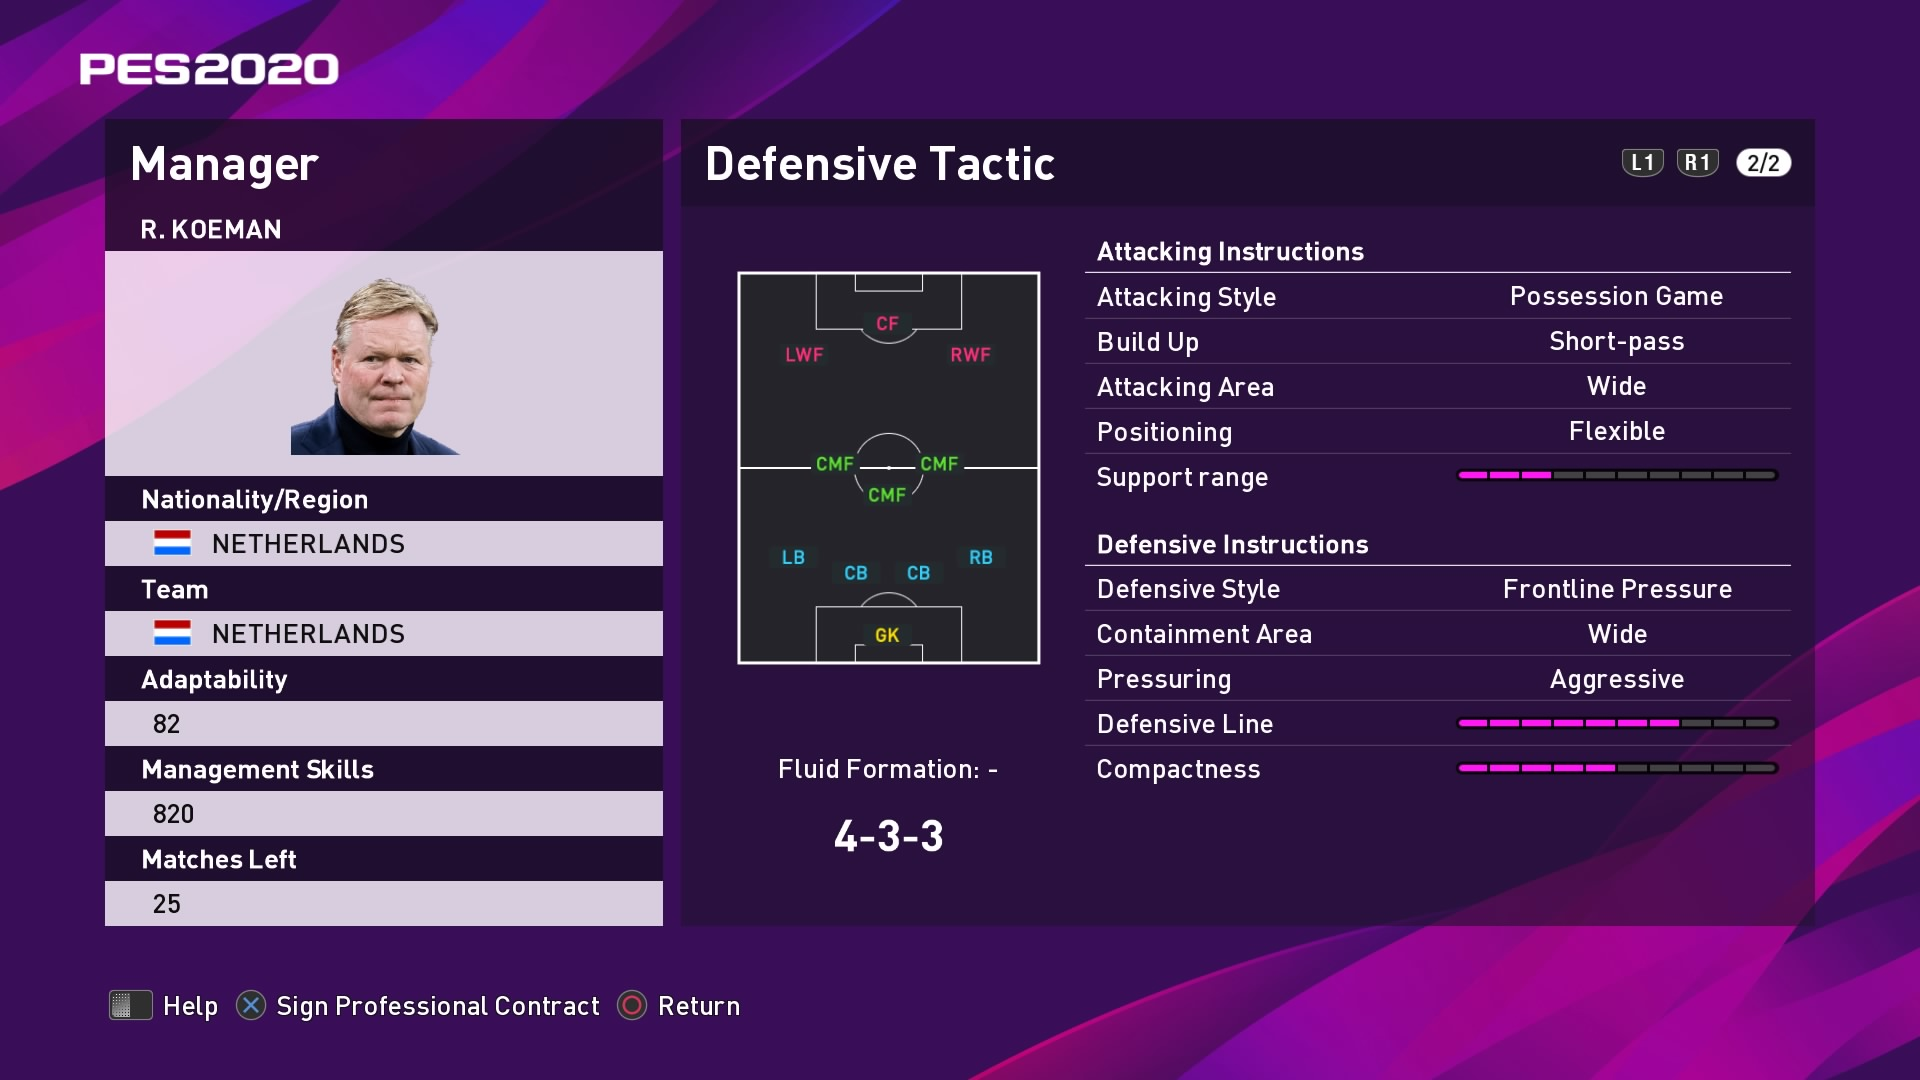 R. Koeman (2) (Ronald Koeman) Defensive Tactic in PES 2020 myClub